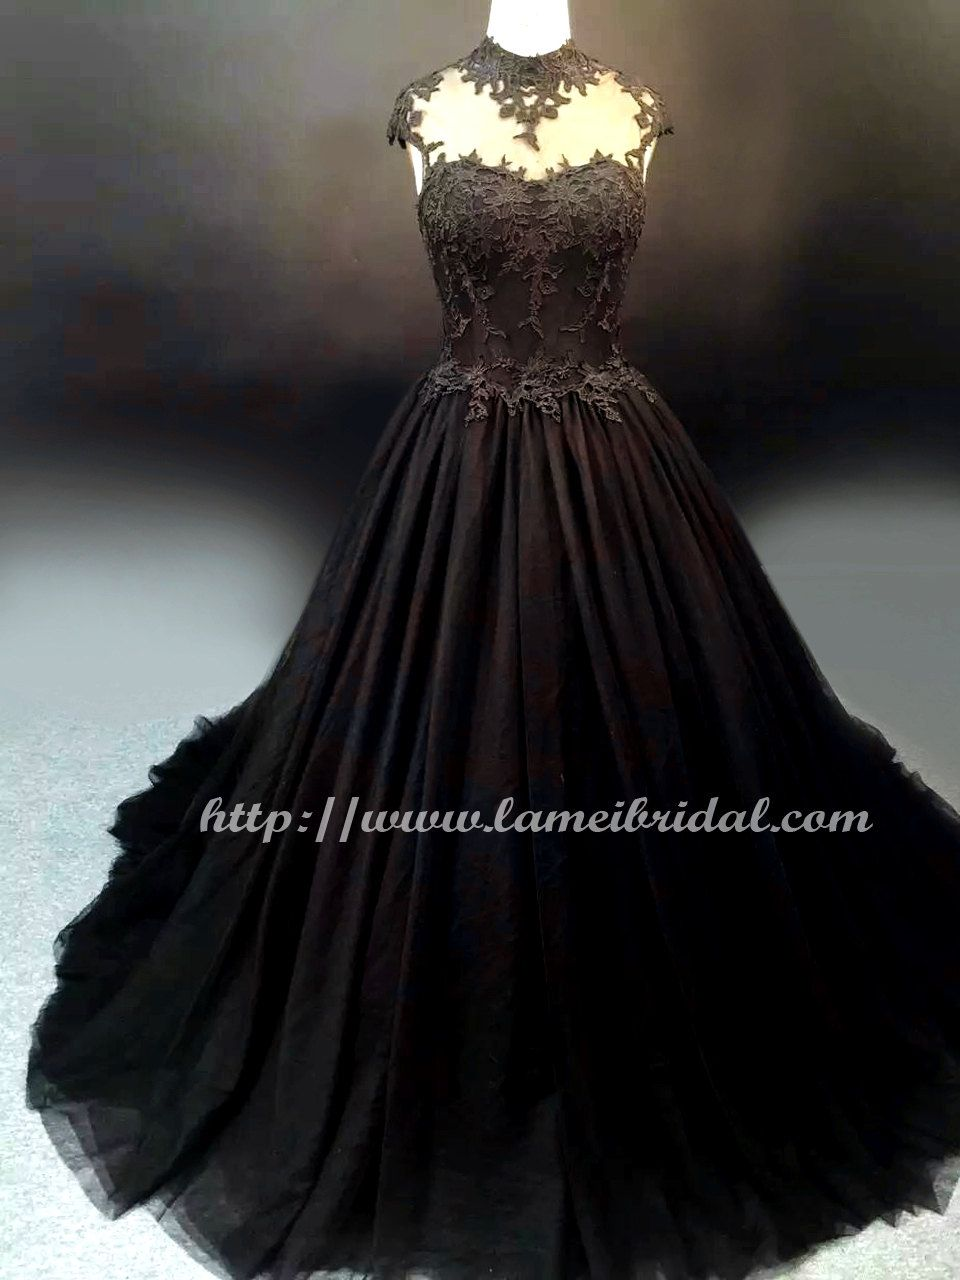 Goth Style Black Lace High Neck Wedding Bridal Dress Ball Gown ... 95187e416f4d